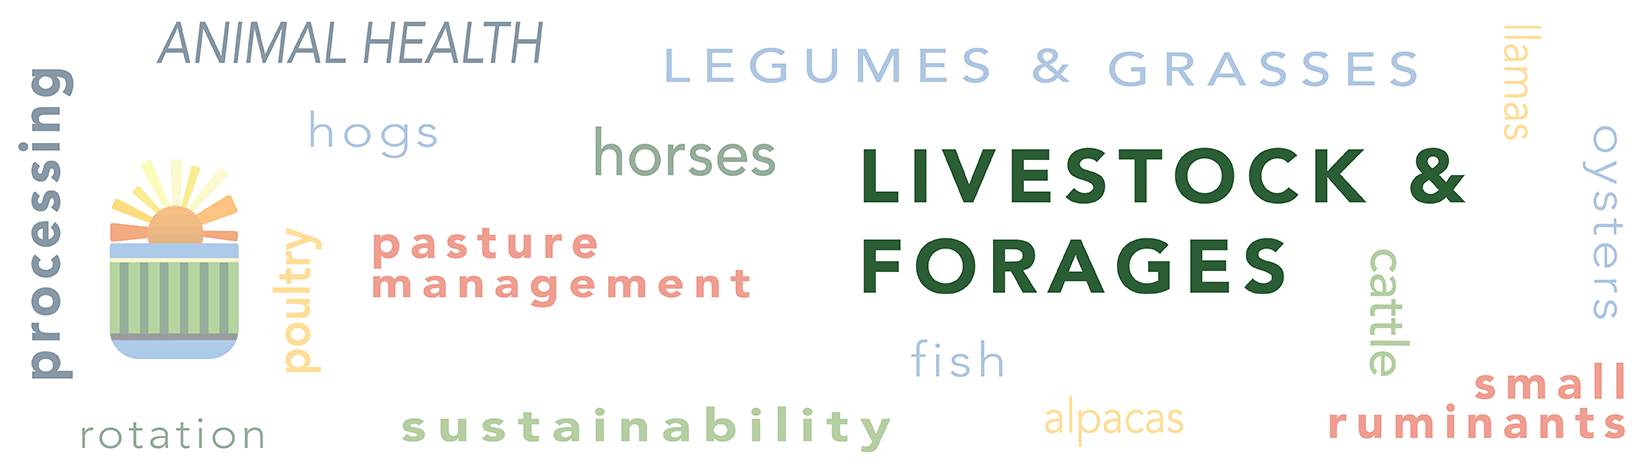 Livestock and Forages - Small Farms and Alternative